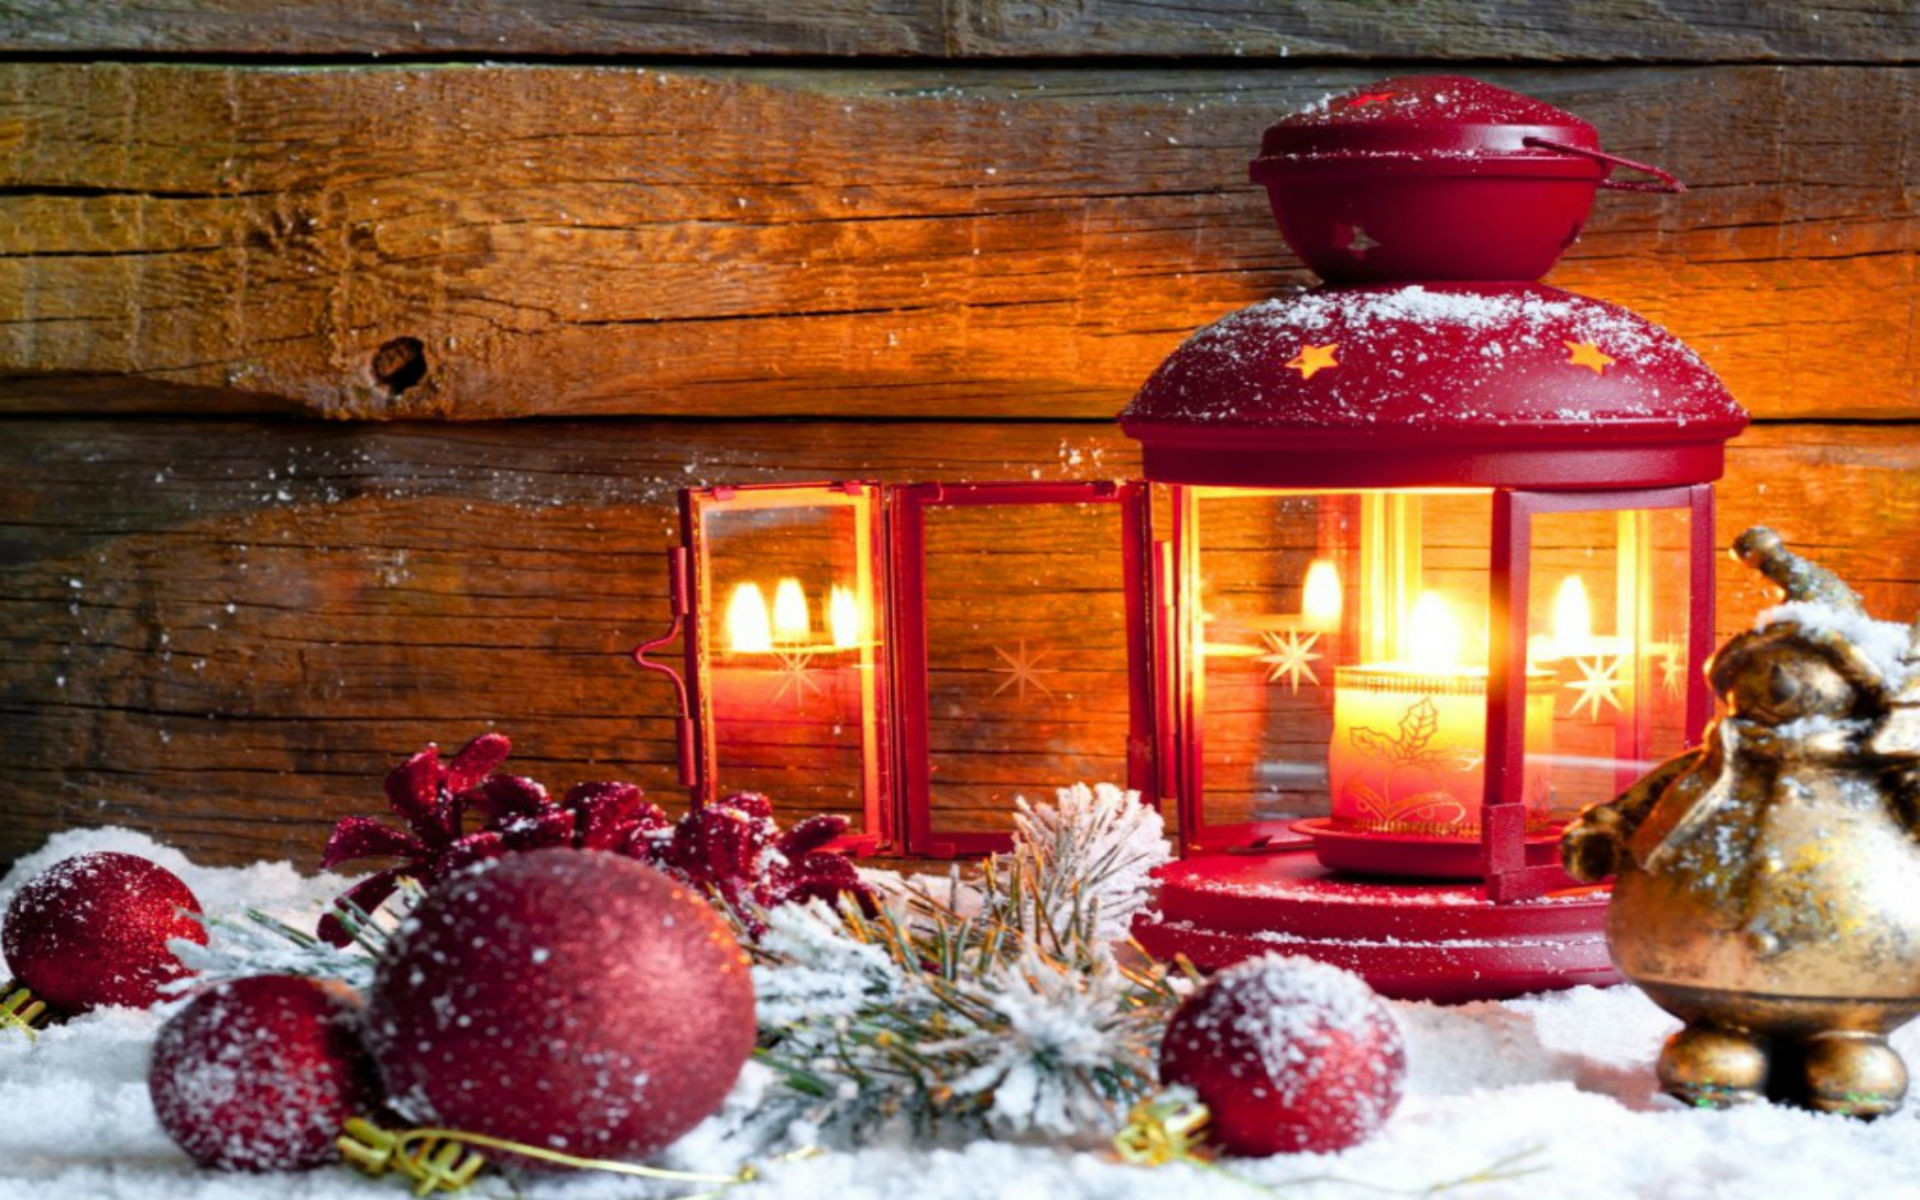 Free Holiday Wallpapers - Old Fashioned Christmas Background - HD Wallpaper